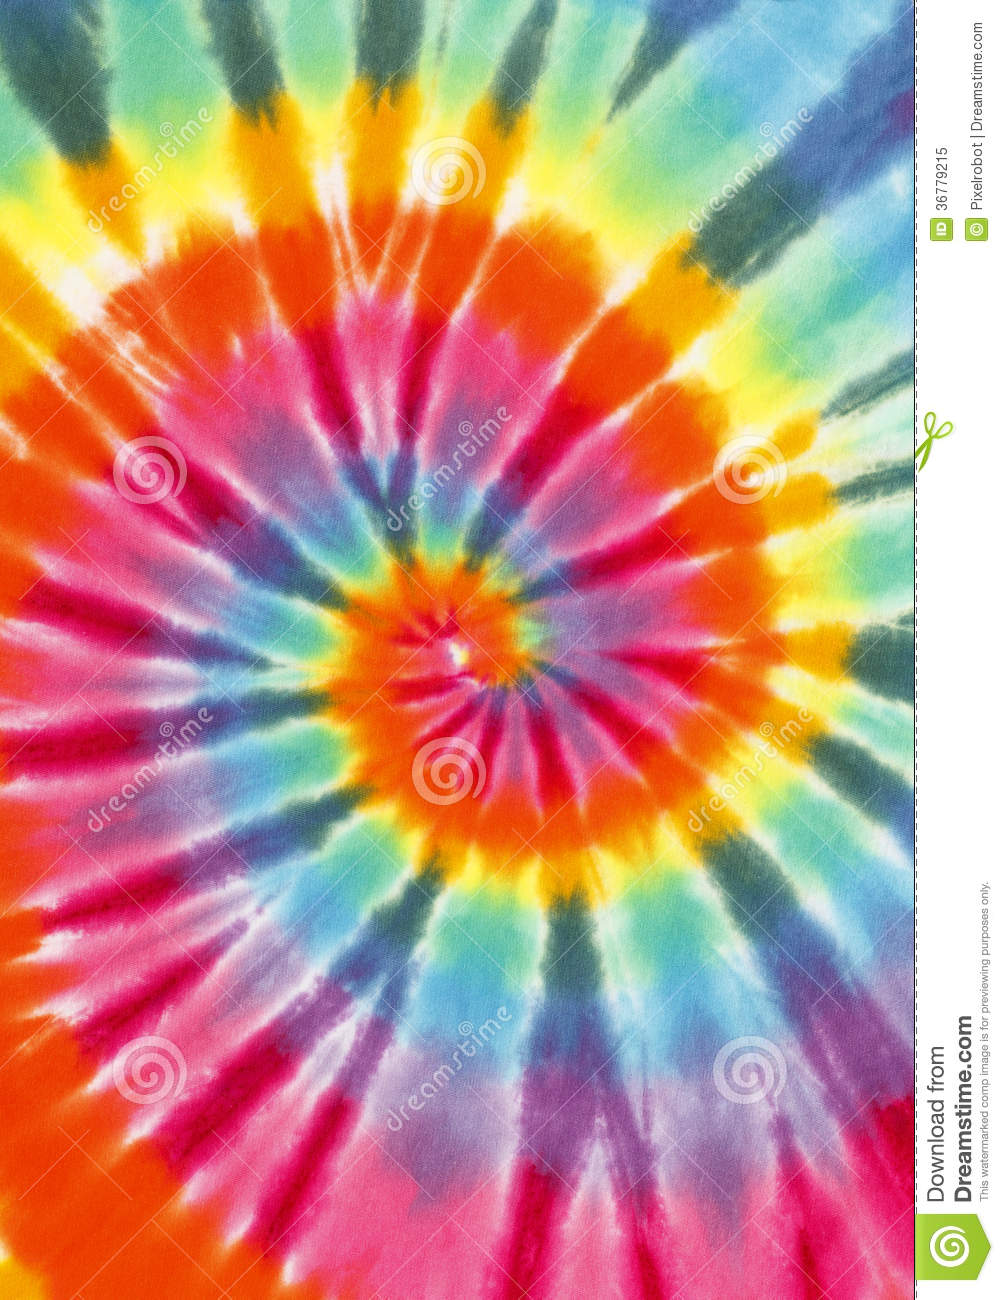 Tie Dye Stock Image Image Of Culture Concert Frame